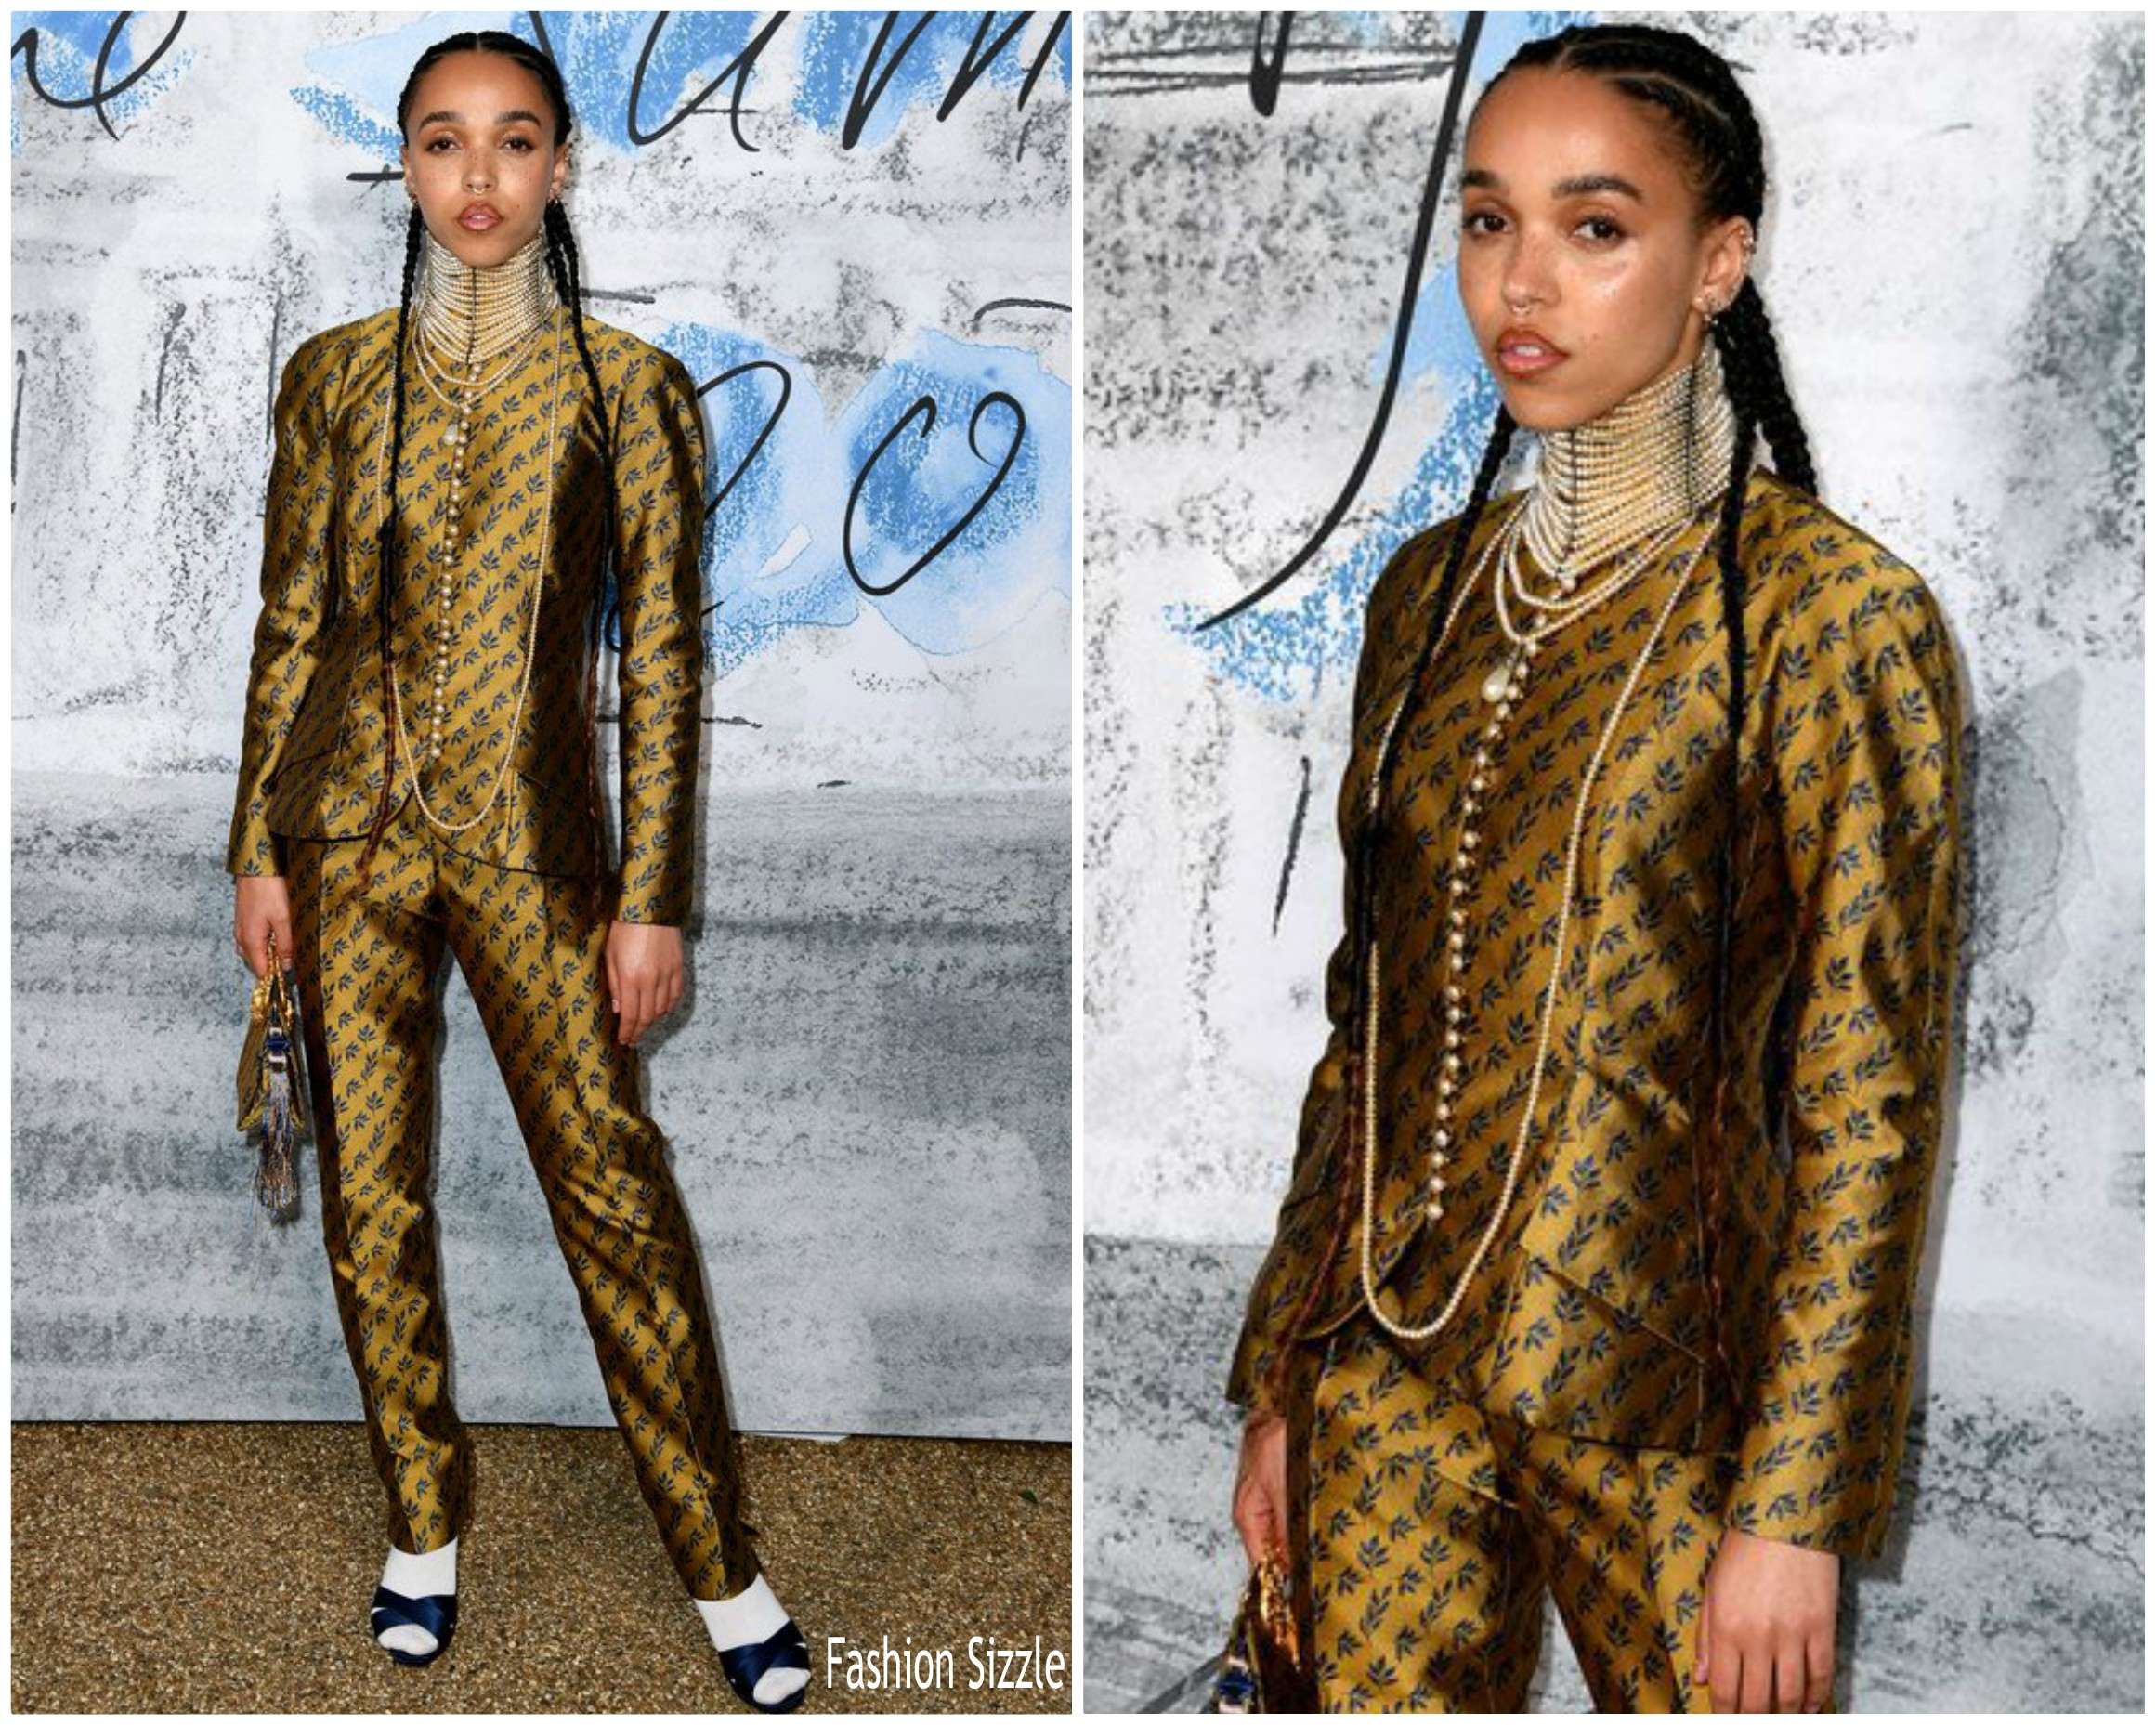 fka-twigs-in-vintage-christian-dior-2019-serpentine-summer-party